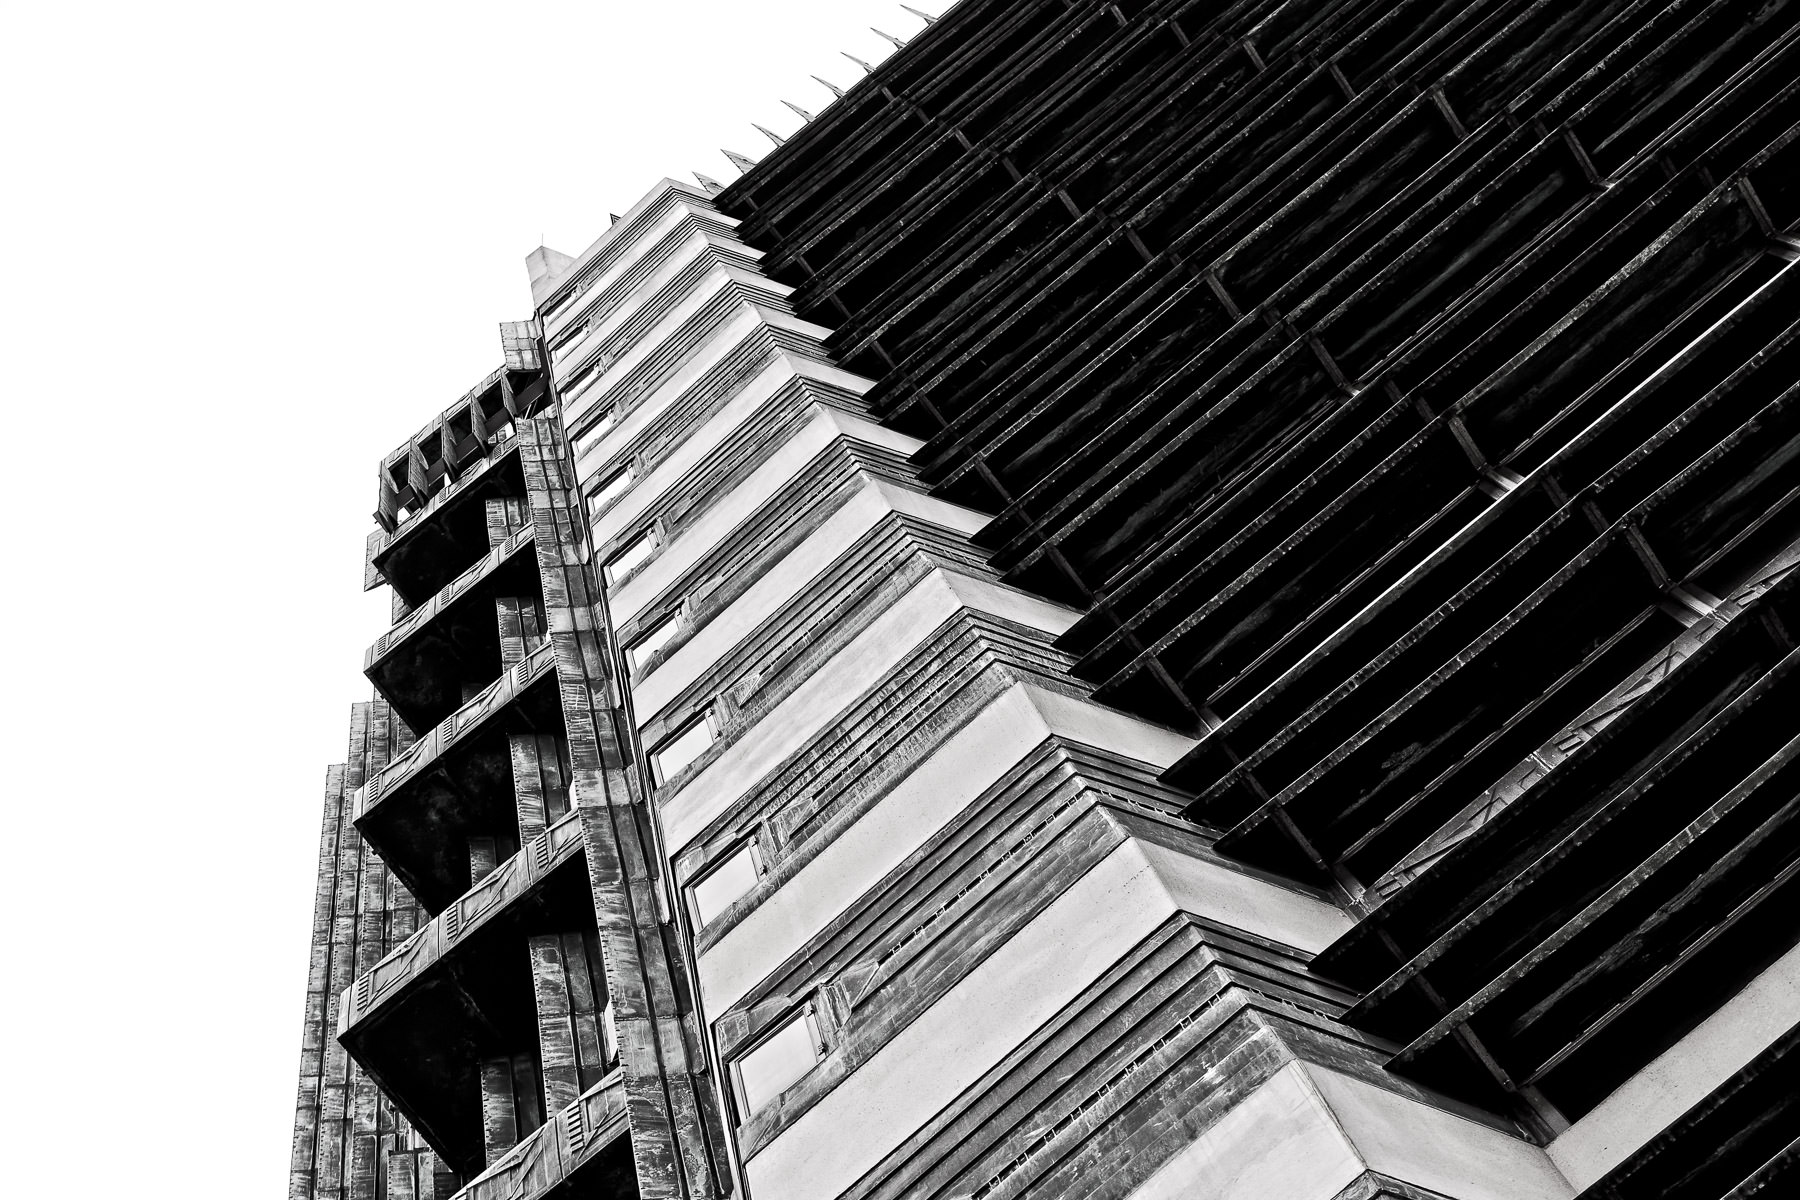 Exterior architectural detail of the Frank Lloyd Wright-designed Price Tower in Bartlesville, Oklahoma.